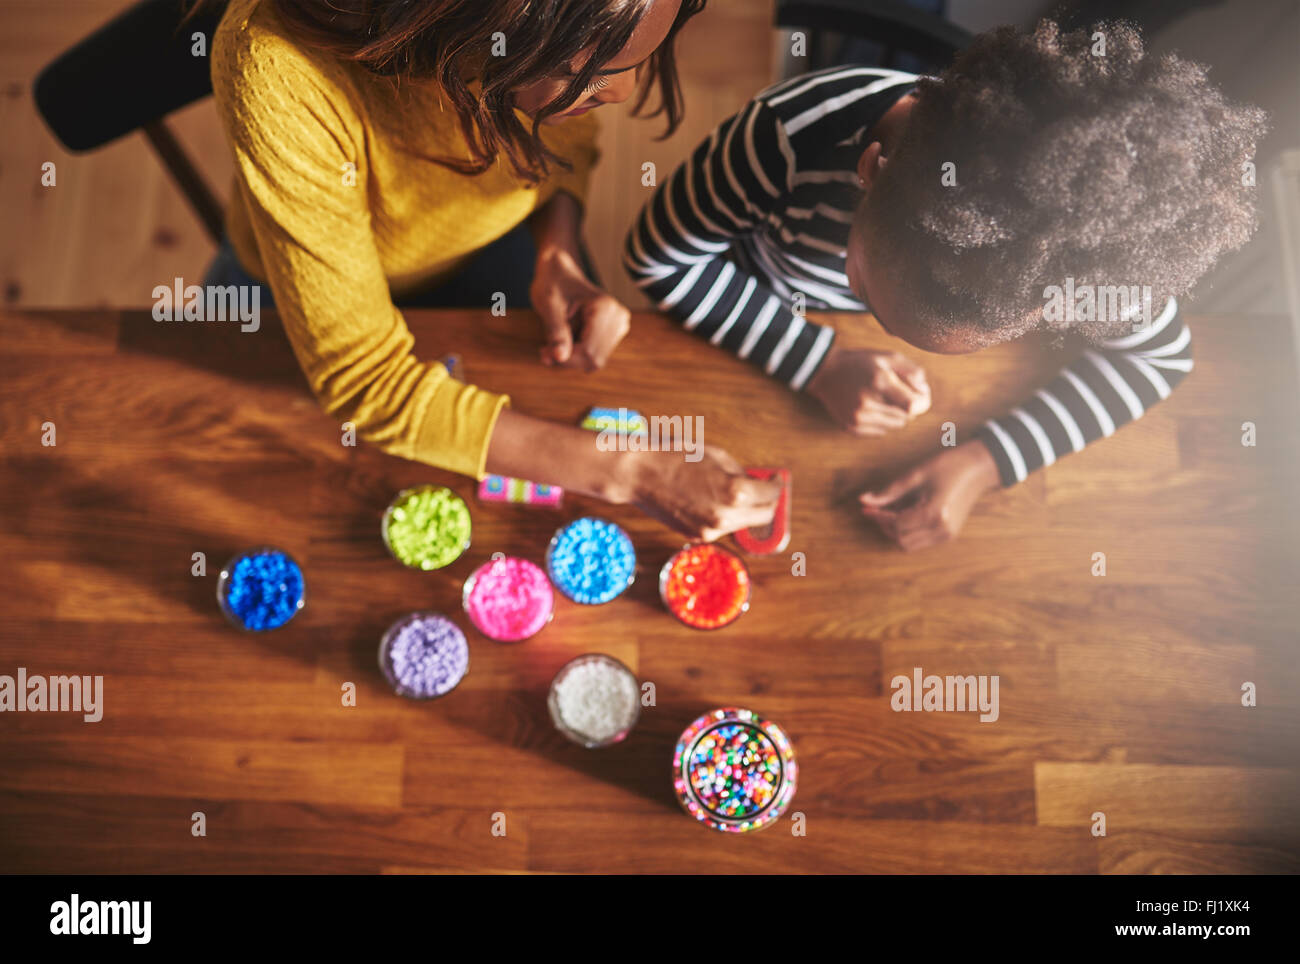 Top down view of seated adult and child choosing beads for crafting project on wooden table - Stock Image